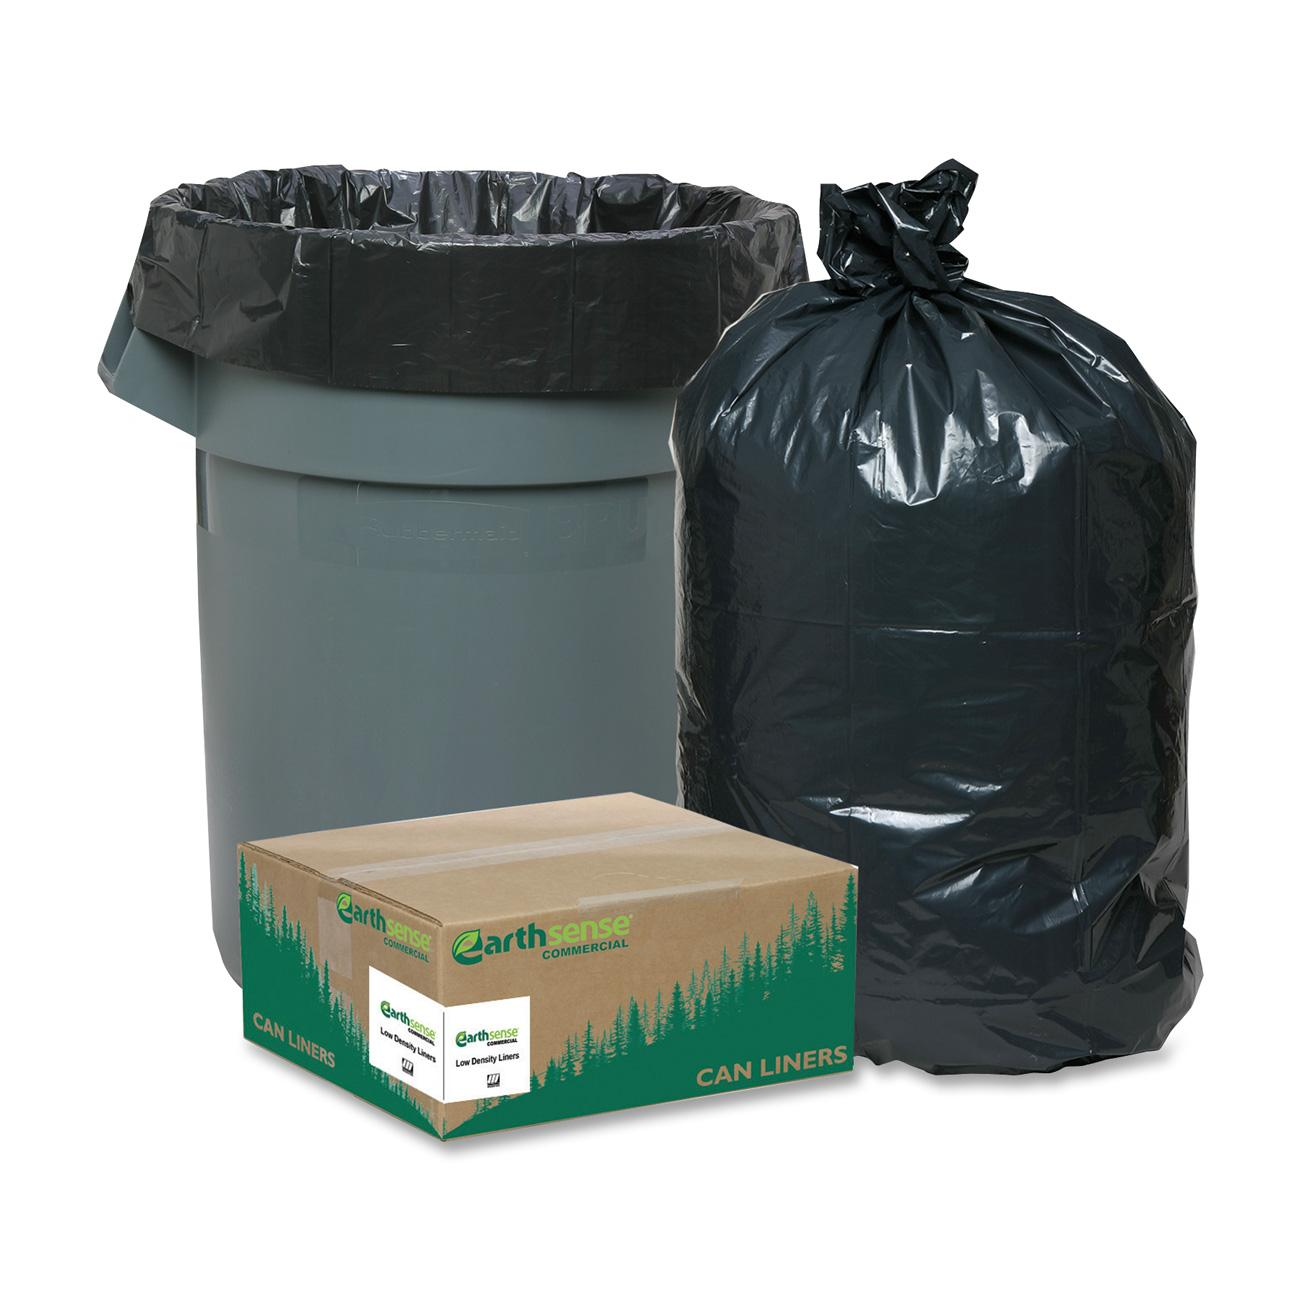 Webster, WBIRNW2410, Reclaim Heavy-Duty Recyled Can Liners, 500 / Carton, Black, 10 gal